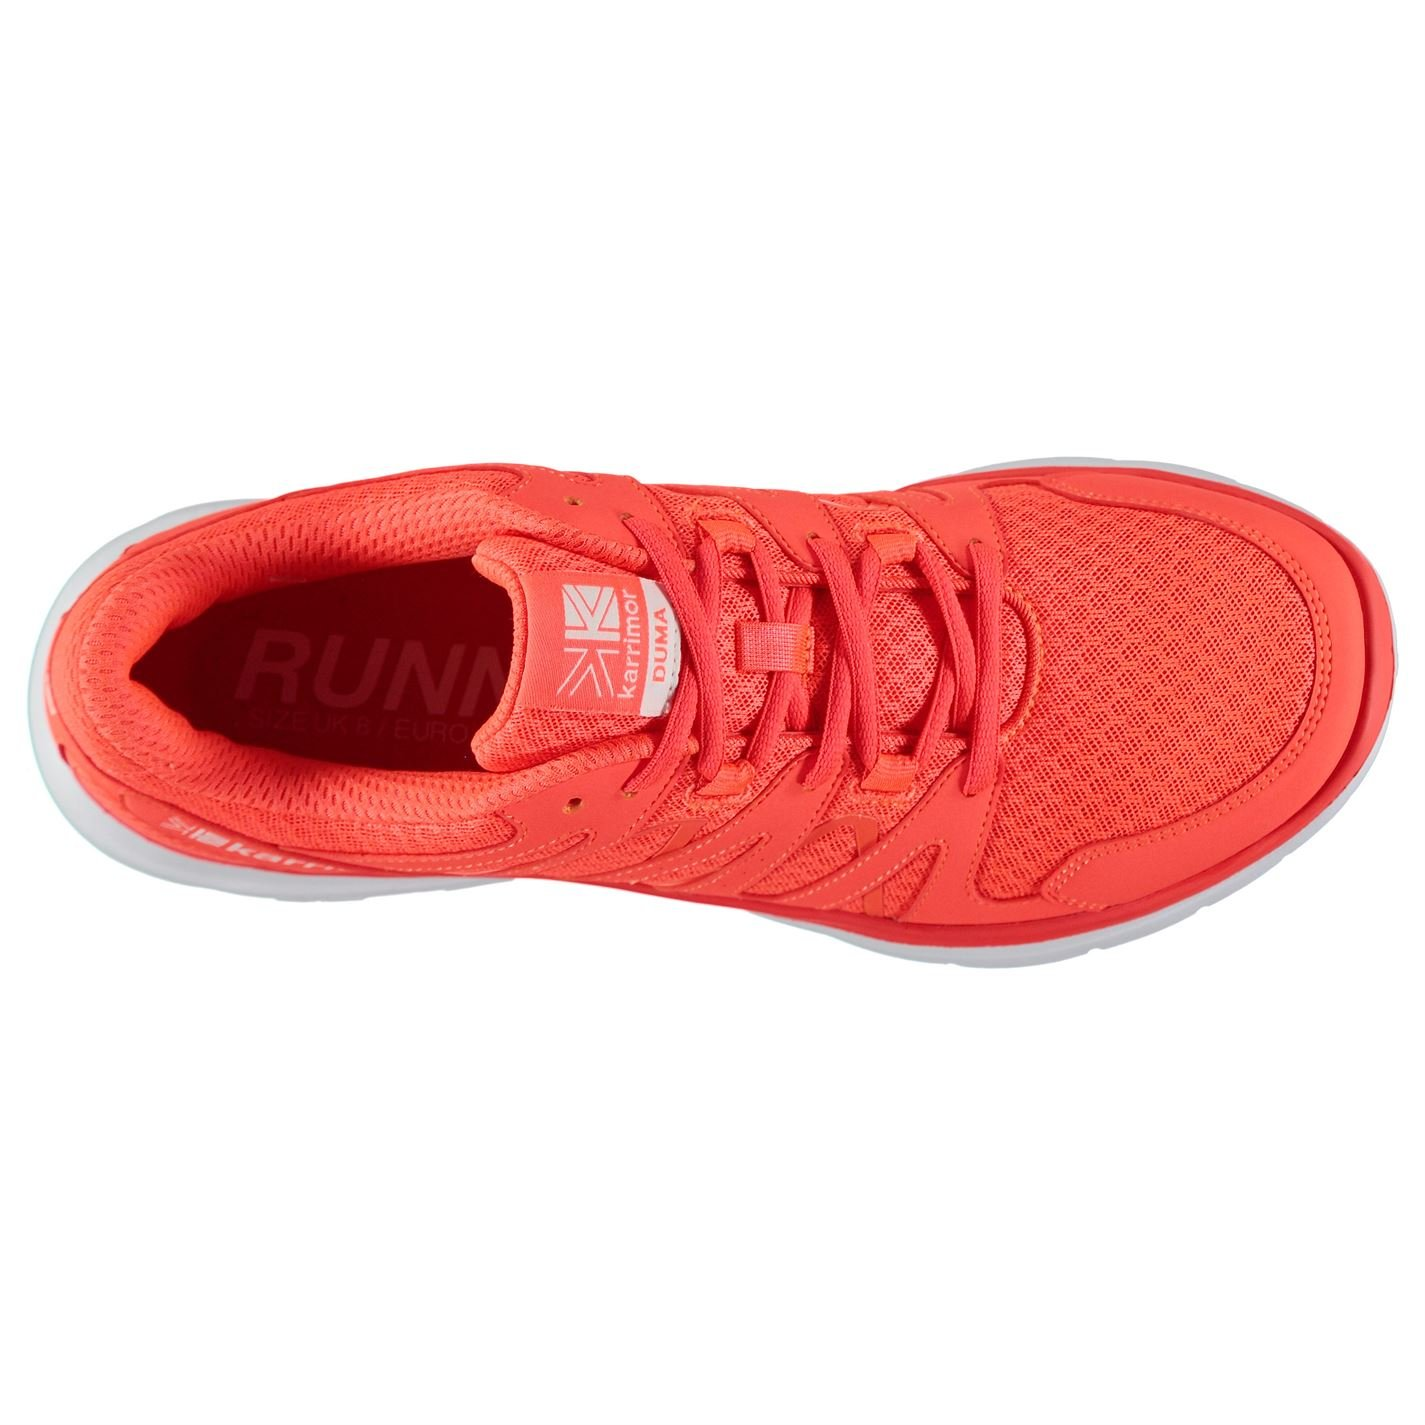 Karrimor Mens Duma Running Shoes Runners Lace Up Breathable